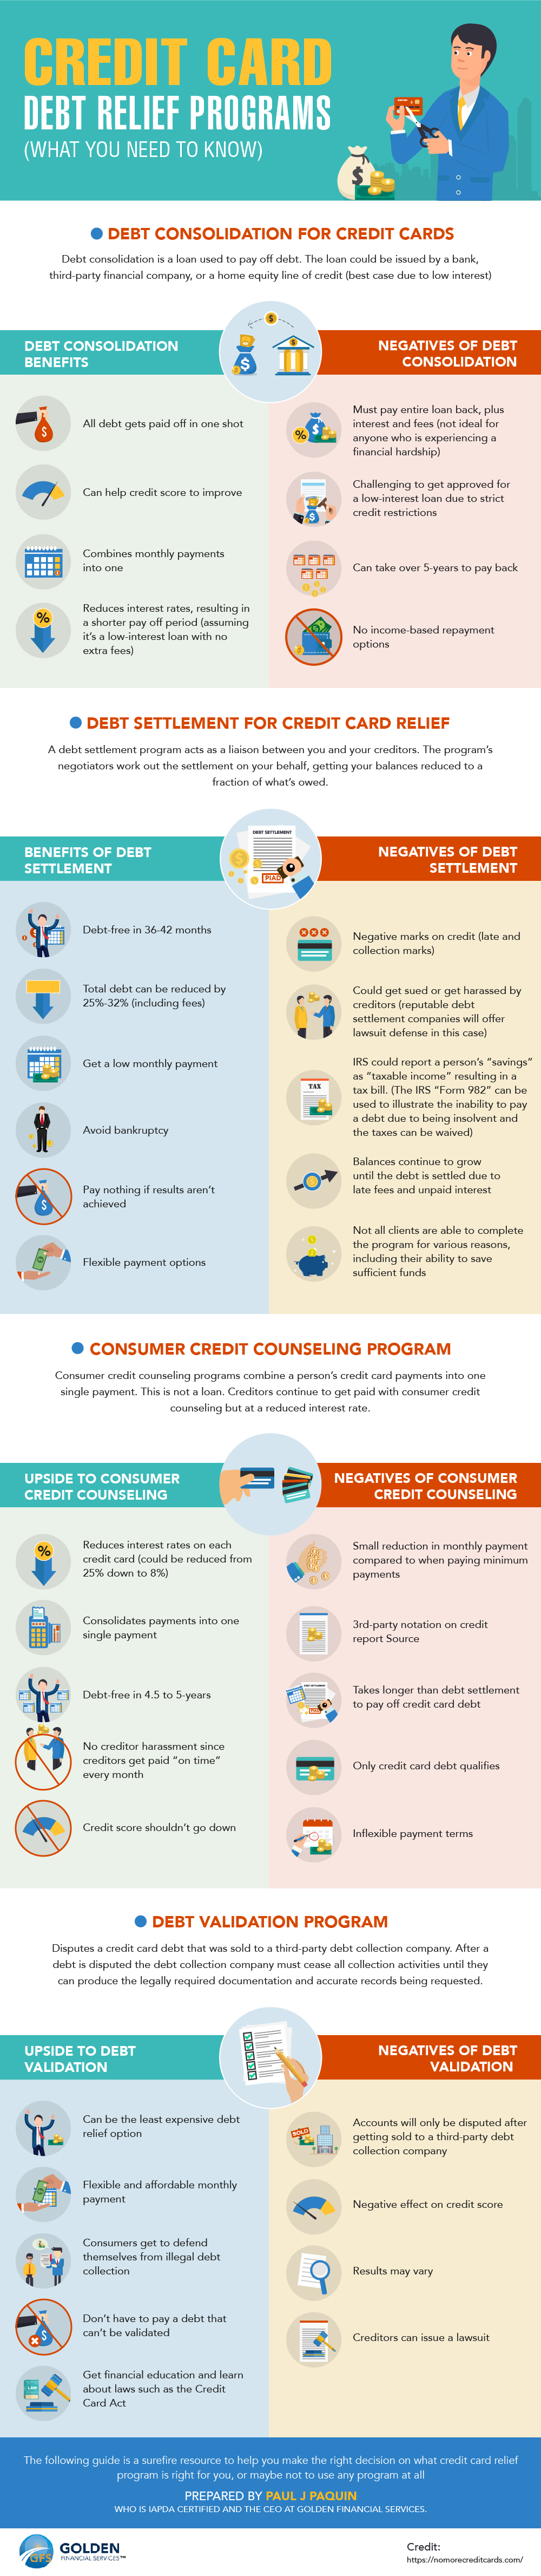 How Credit Card Debt Relief Programs Work & Affect Credit Scores?